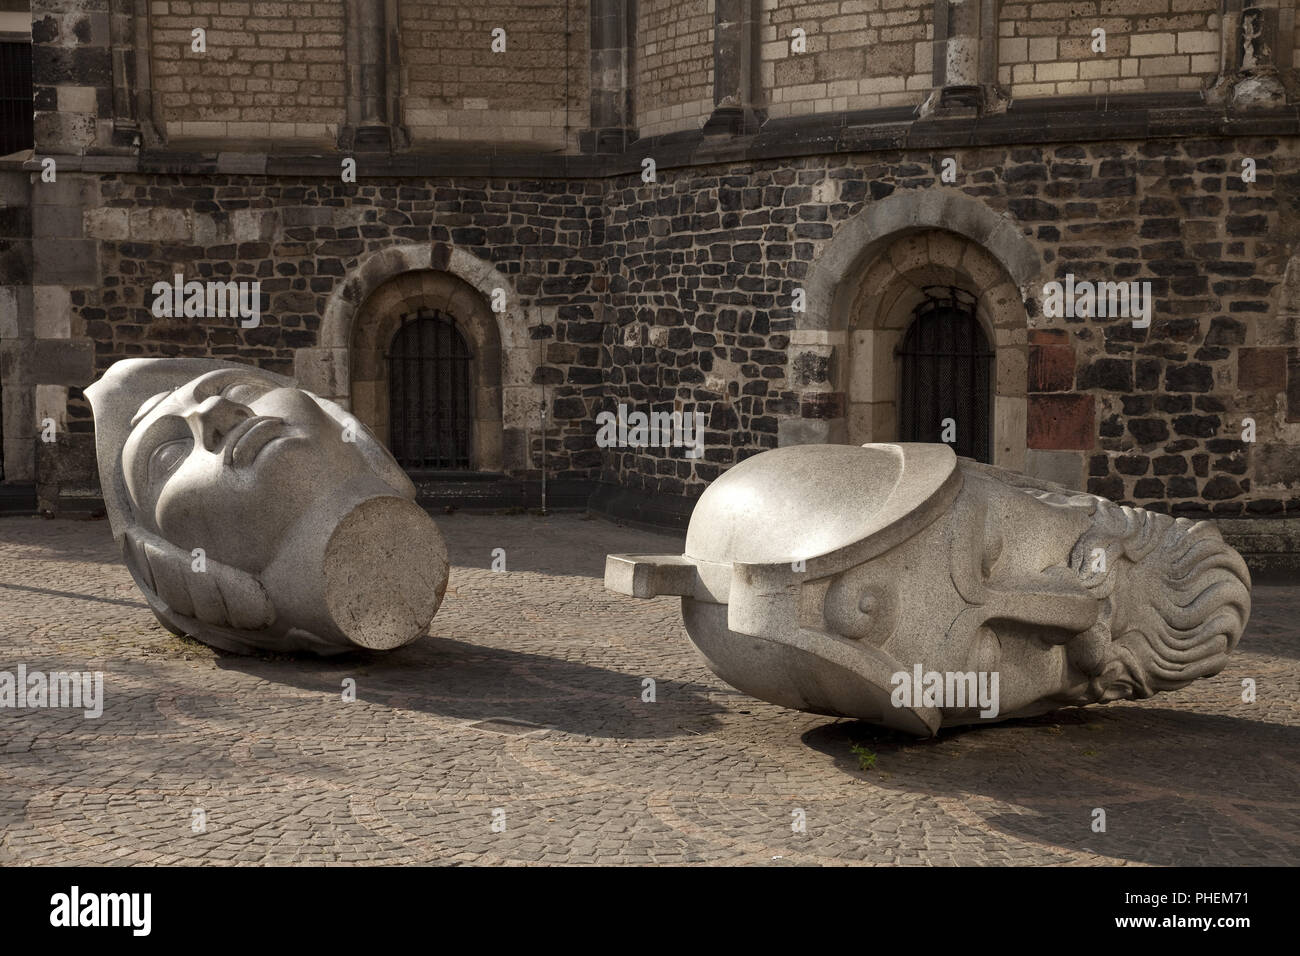 Cassius and Florentinus, two granite heads in front of Bonn Minster, Bonn, Germany, Europe - Stock Image